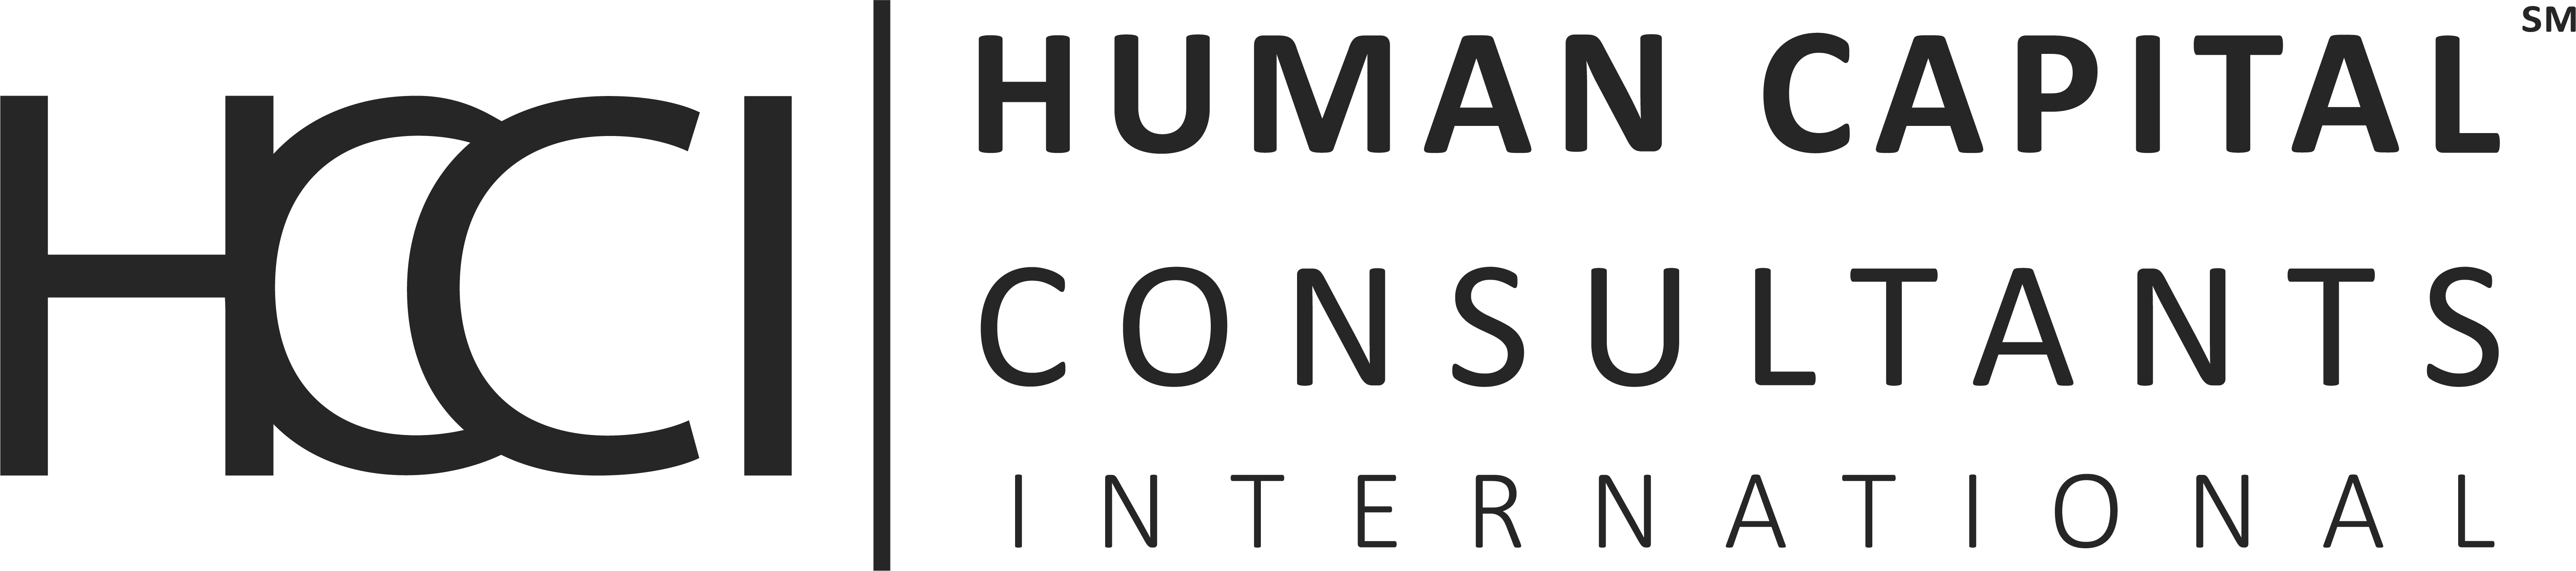 Human Capital Consultants International, LLC